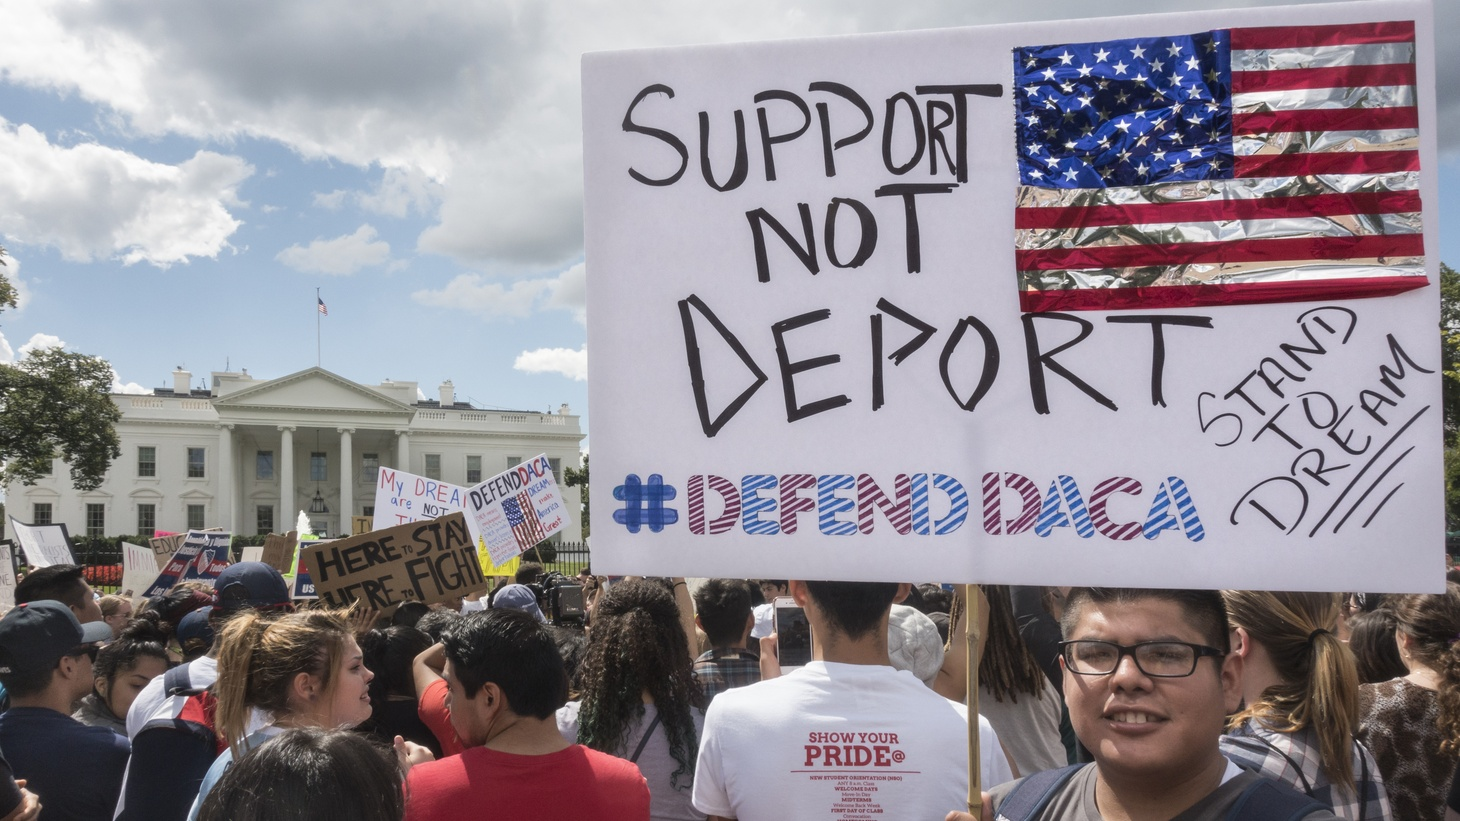 In front of the White House, demonstrators try to drum up support for DACA during the Trump administration, September 9, 2017.